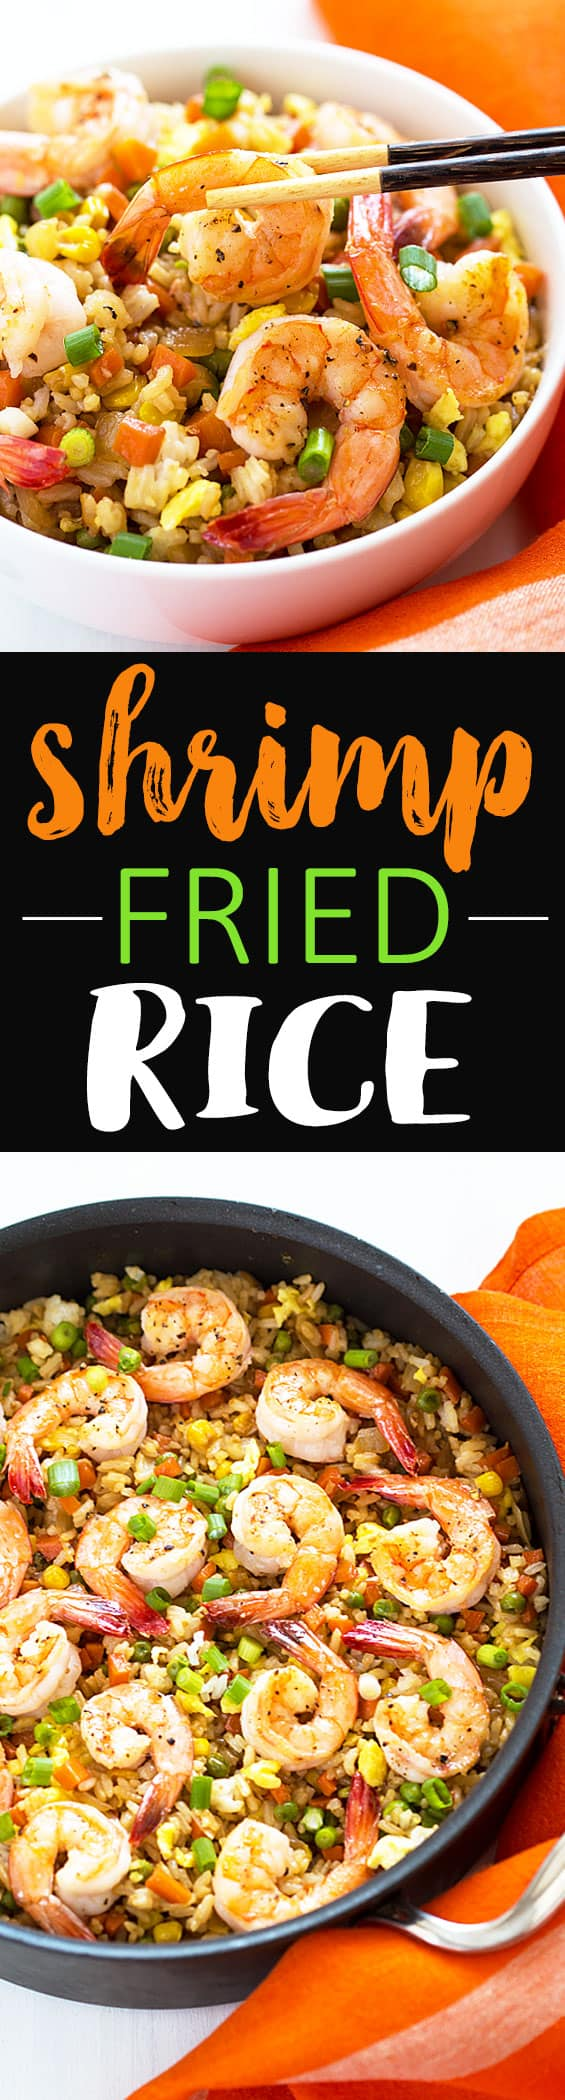 Two images of shrimp with vegetables and rice. Text in center says shrimp fried rice.